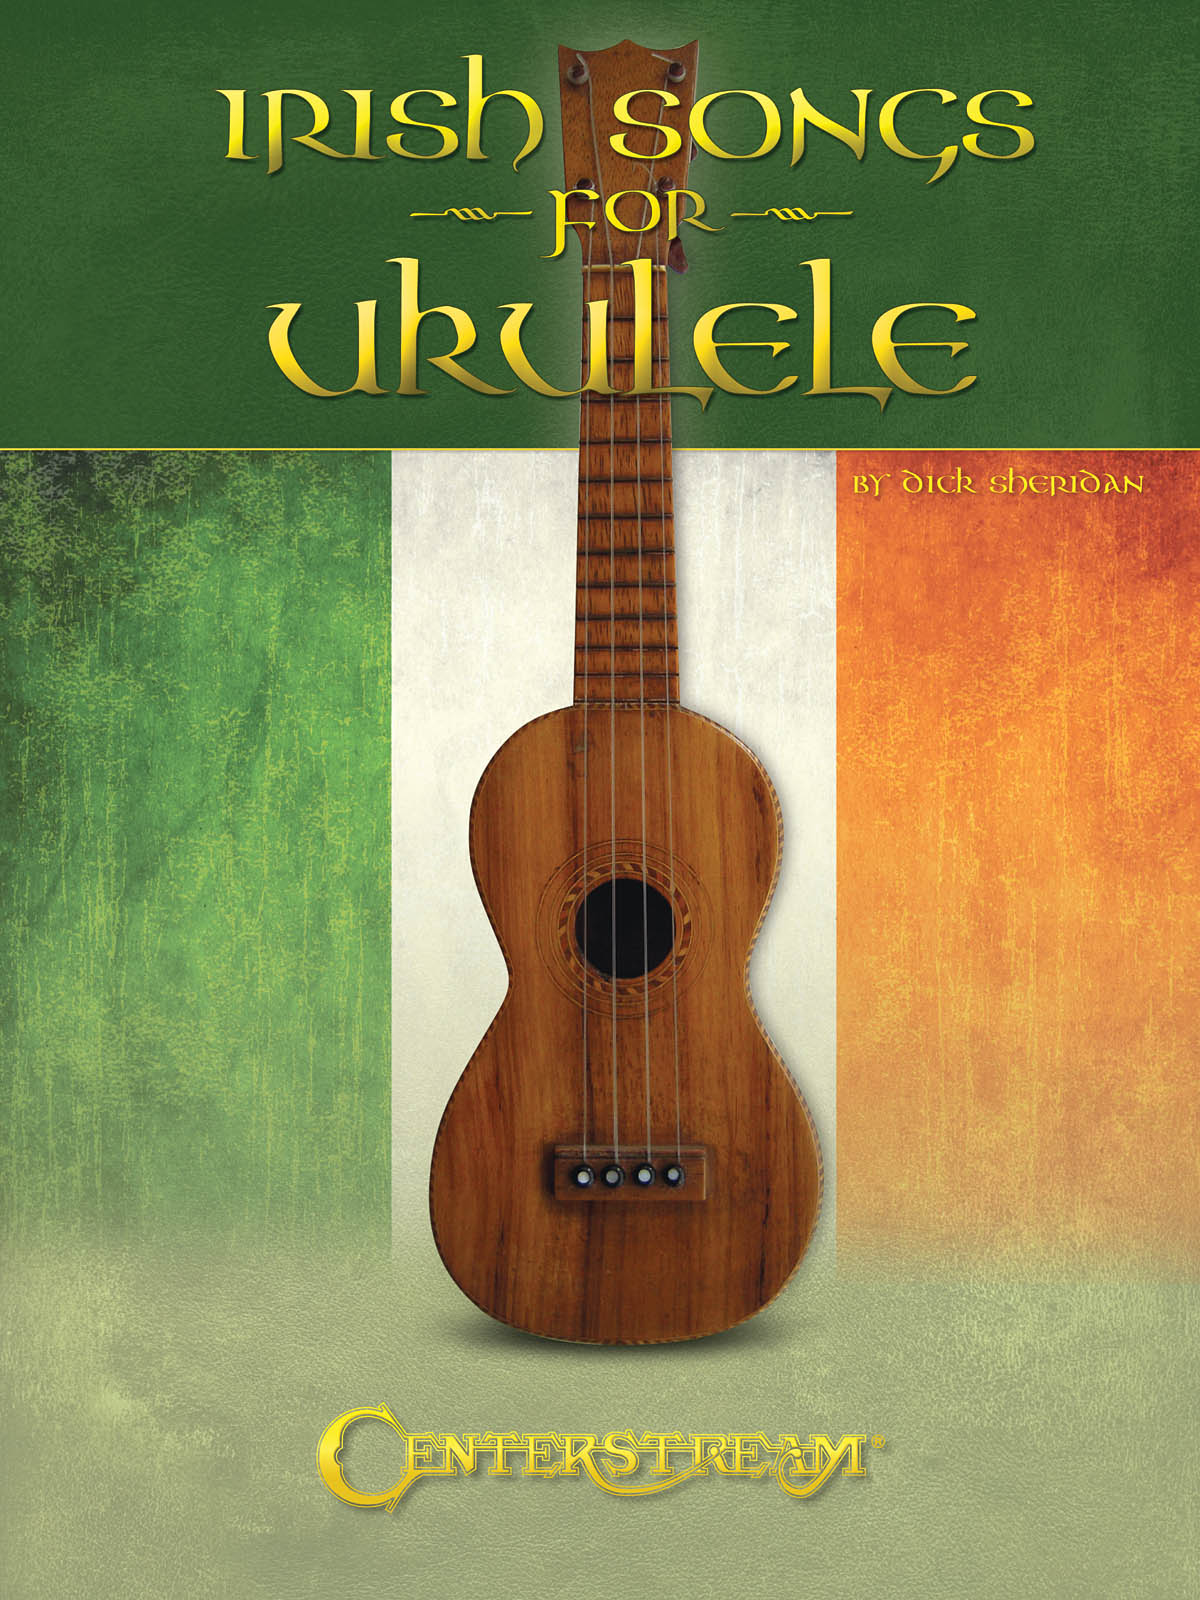 Irish Songs for Ukulele: Ukulele Solo: Instrumental Album